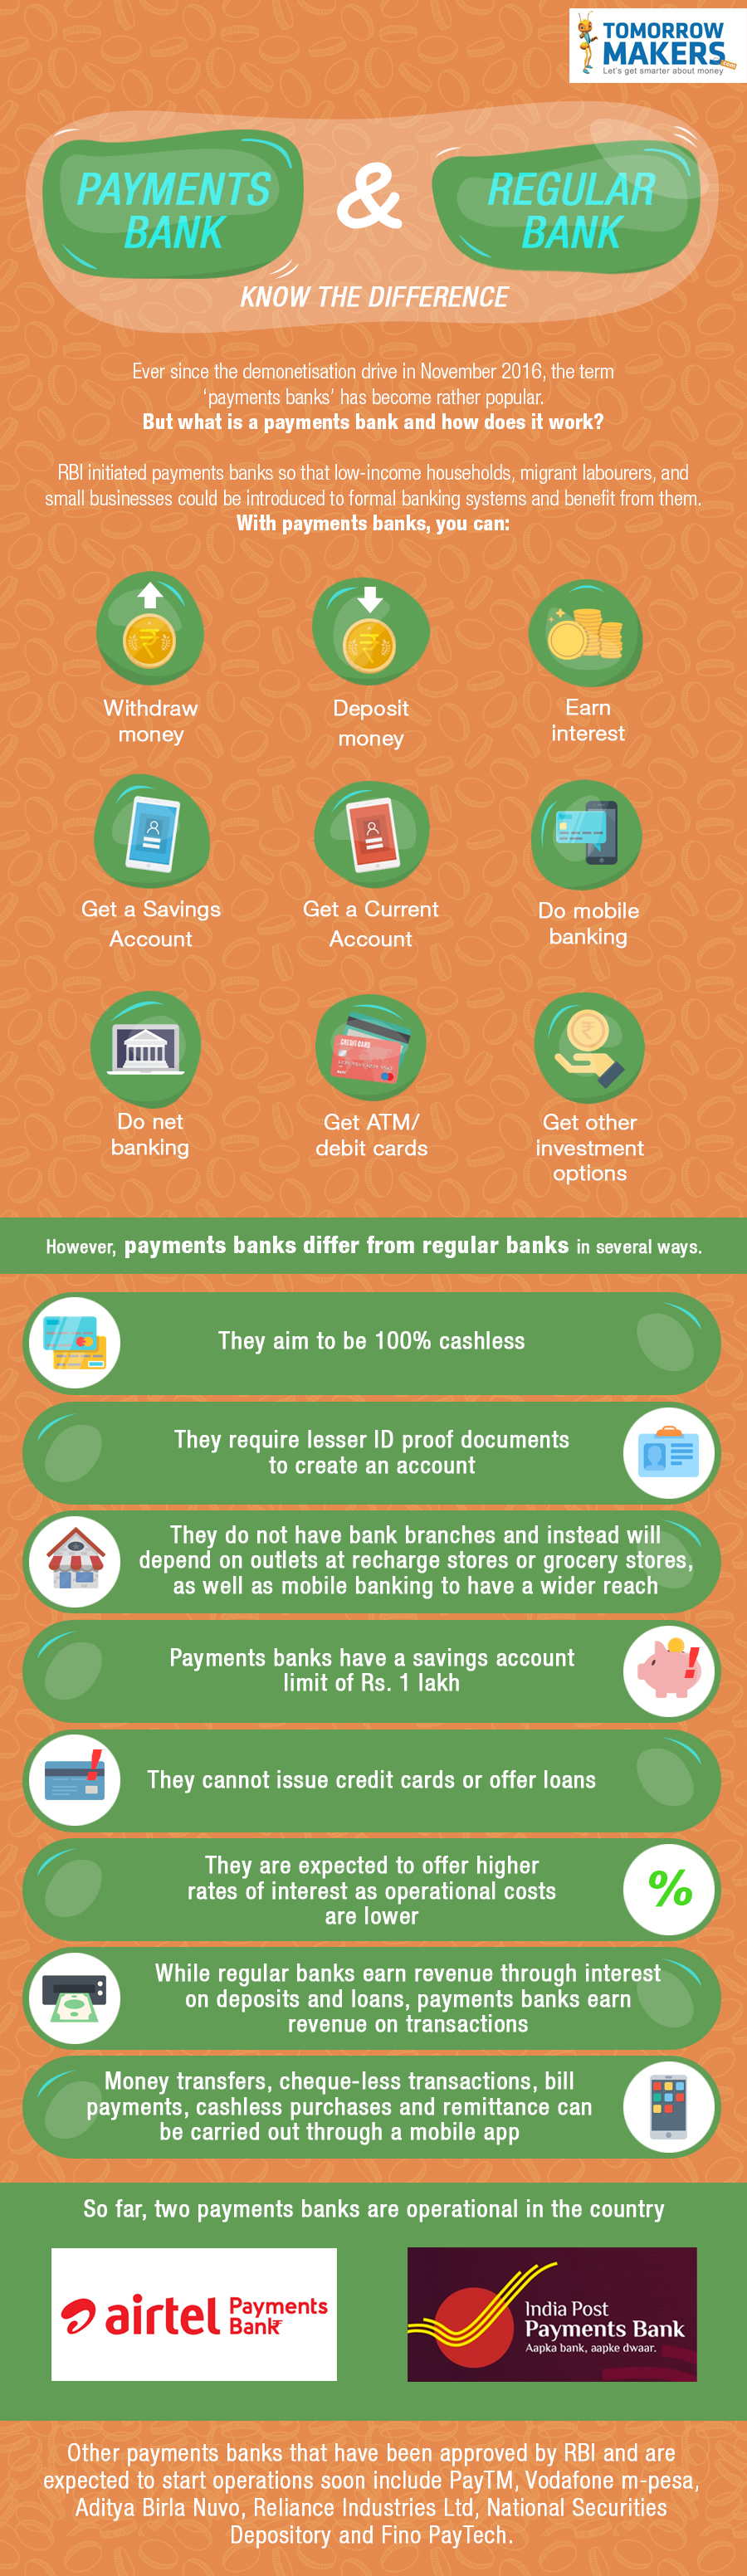 payment-banks-are-different-from-regular-banks-v3